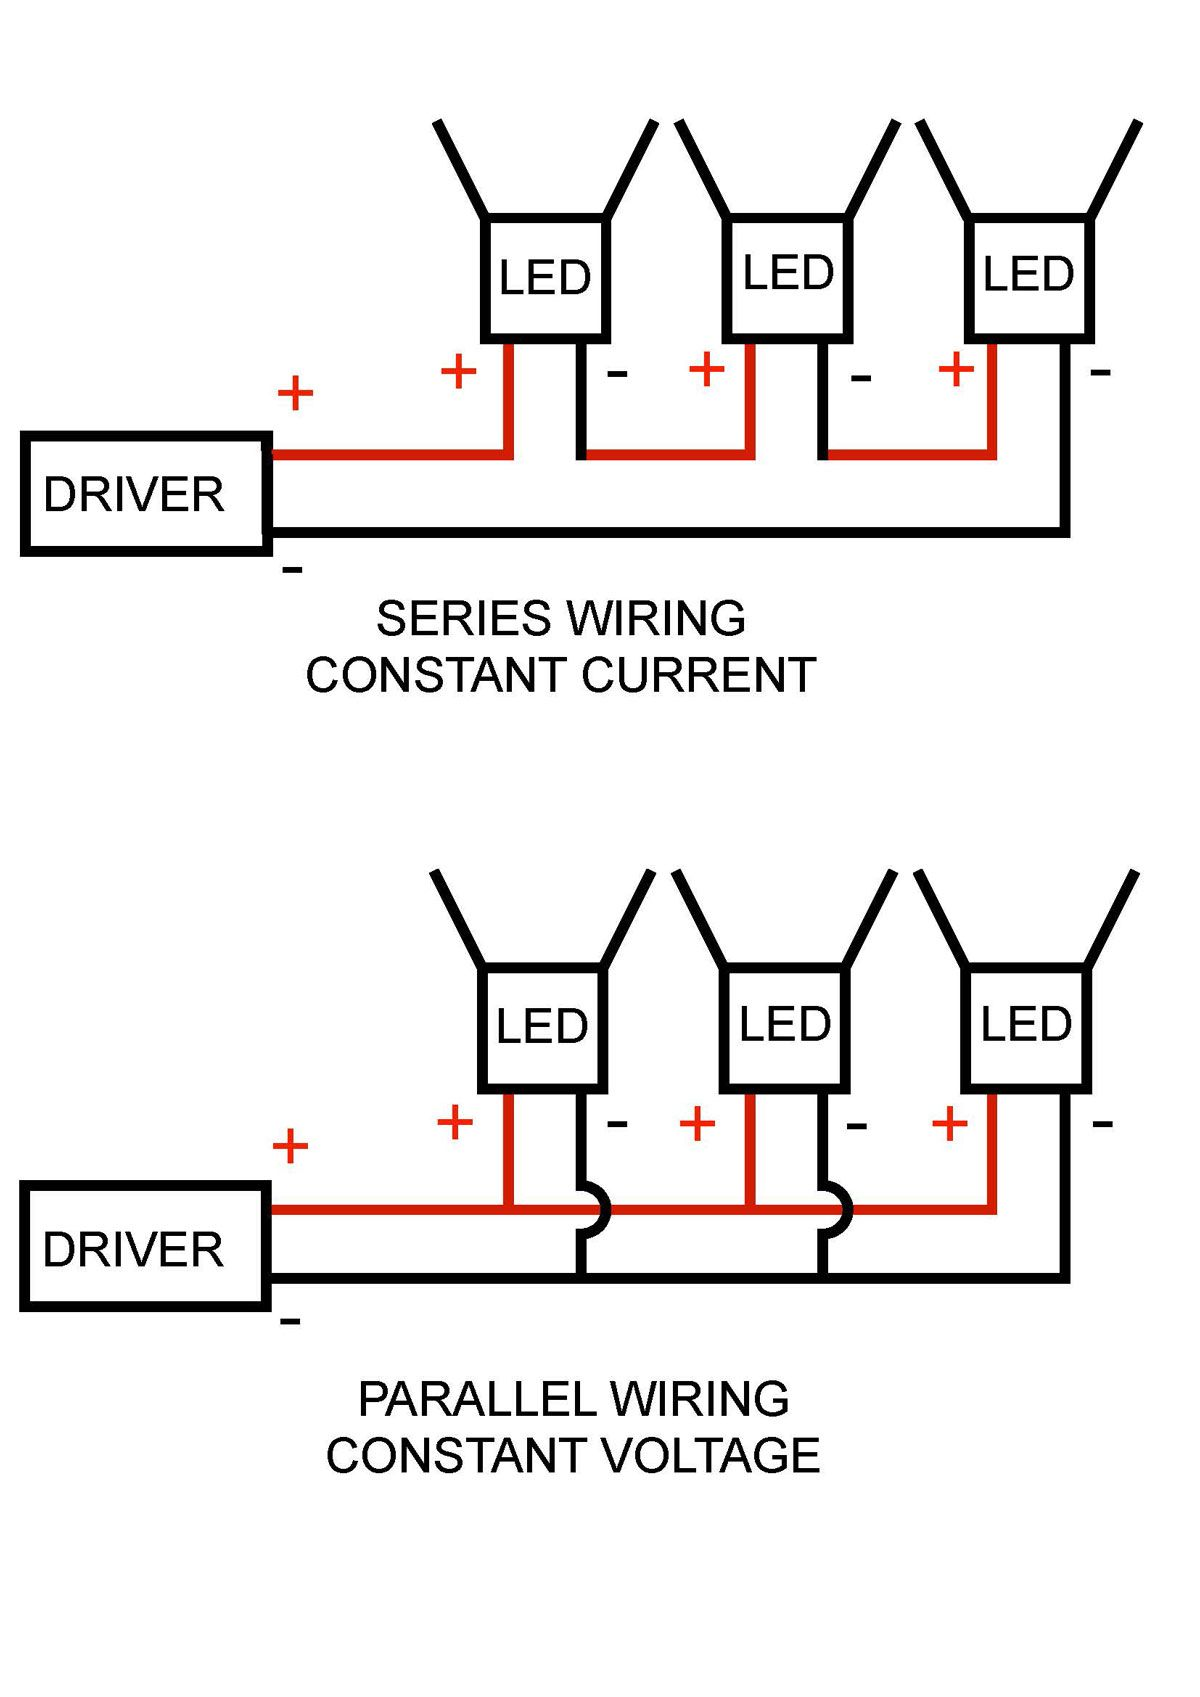 Wiring Diagram Marvelous Lights In Series Or Parallel For Recessed Lighting Led Recessed Lighting Parallel Wiring